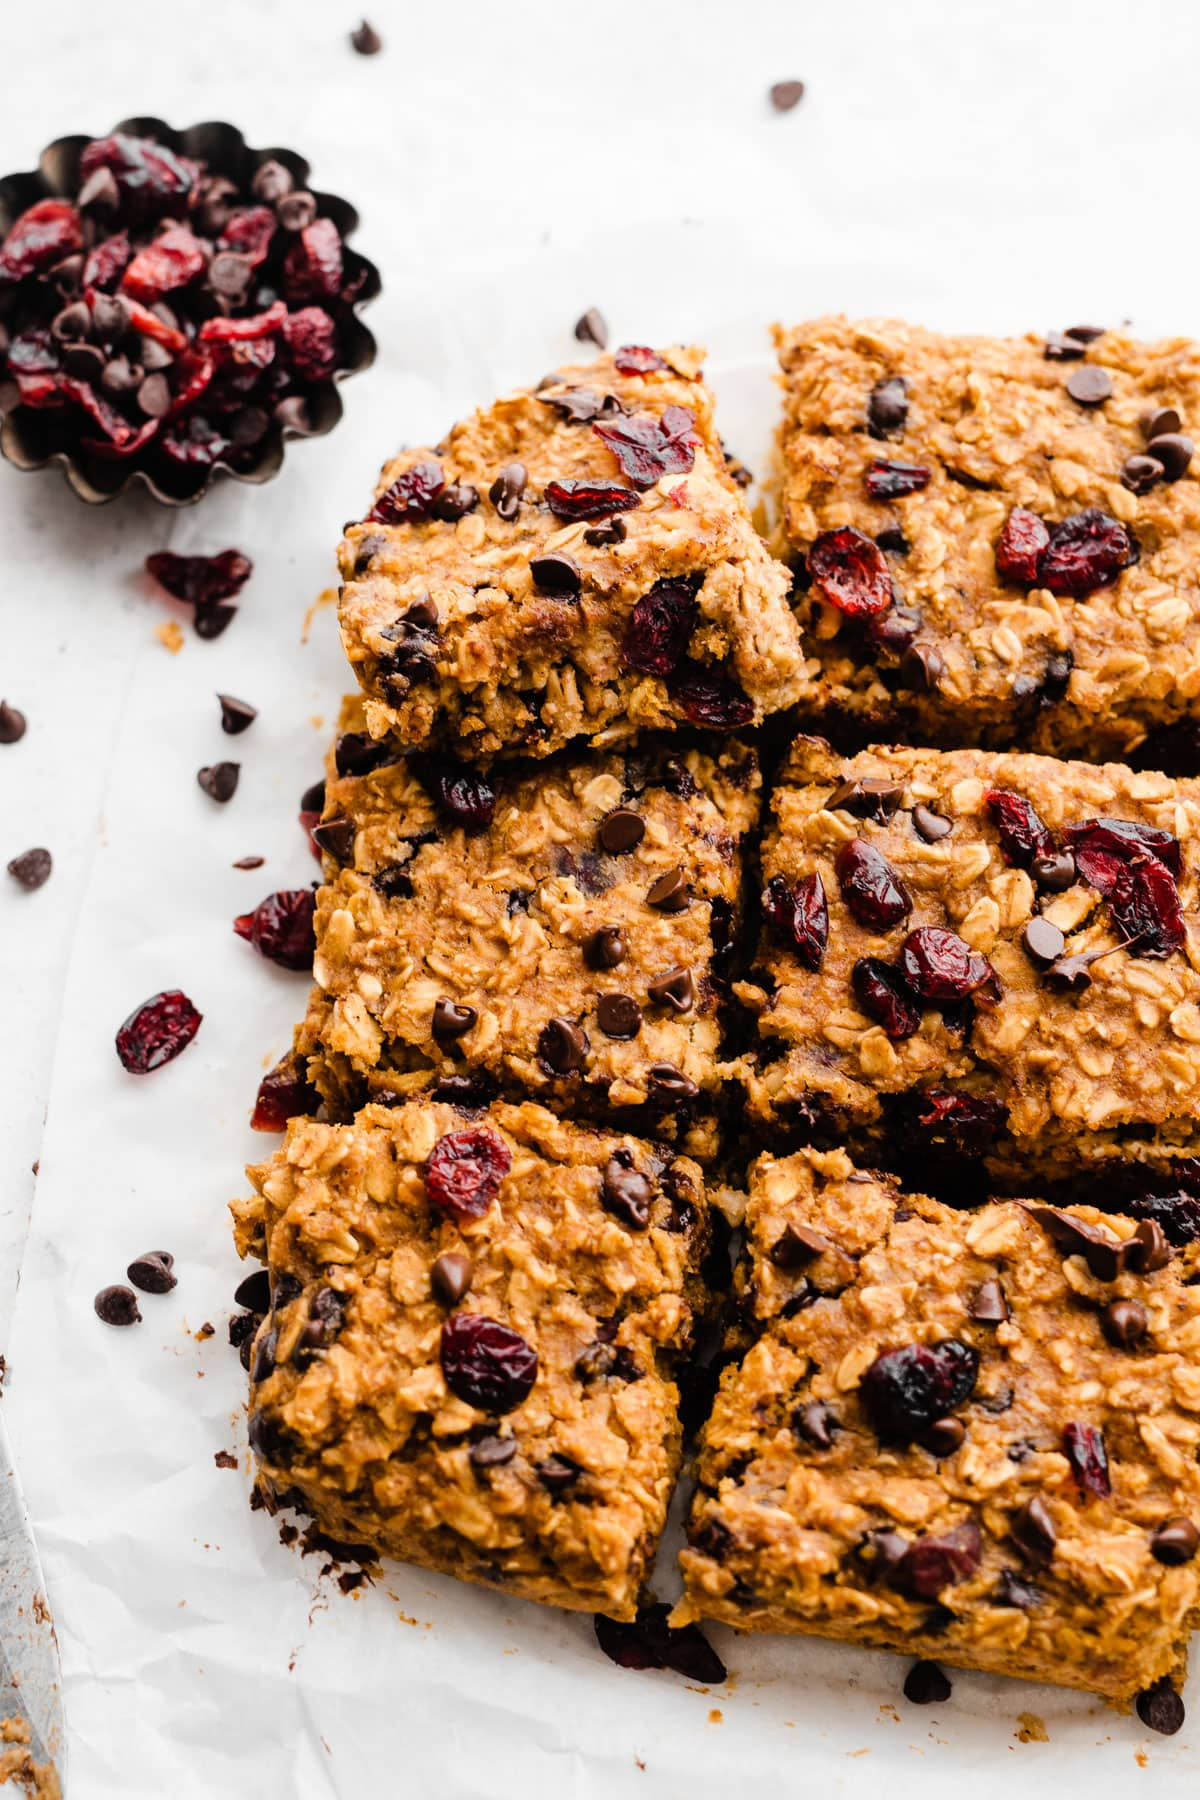 Gluten Free healthy pumpkin bars with cranberries, chocolate chips, and oats cut into squares on parchment paper